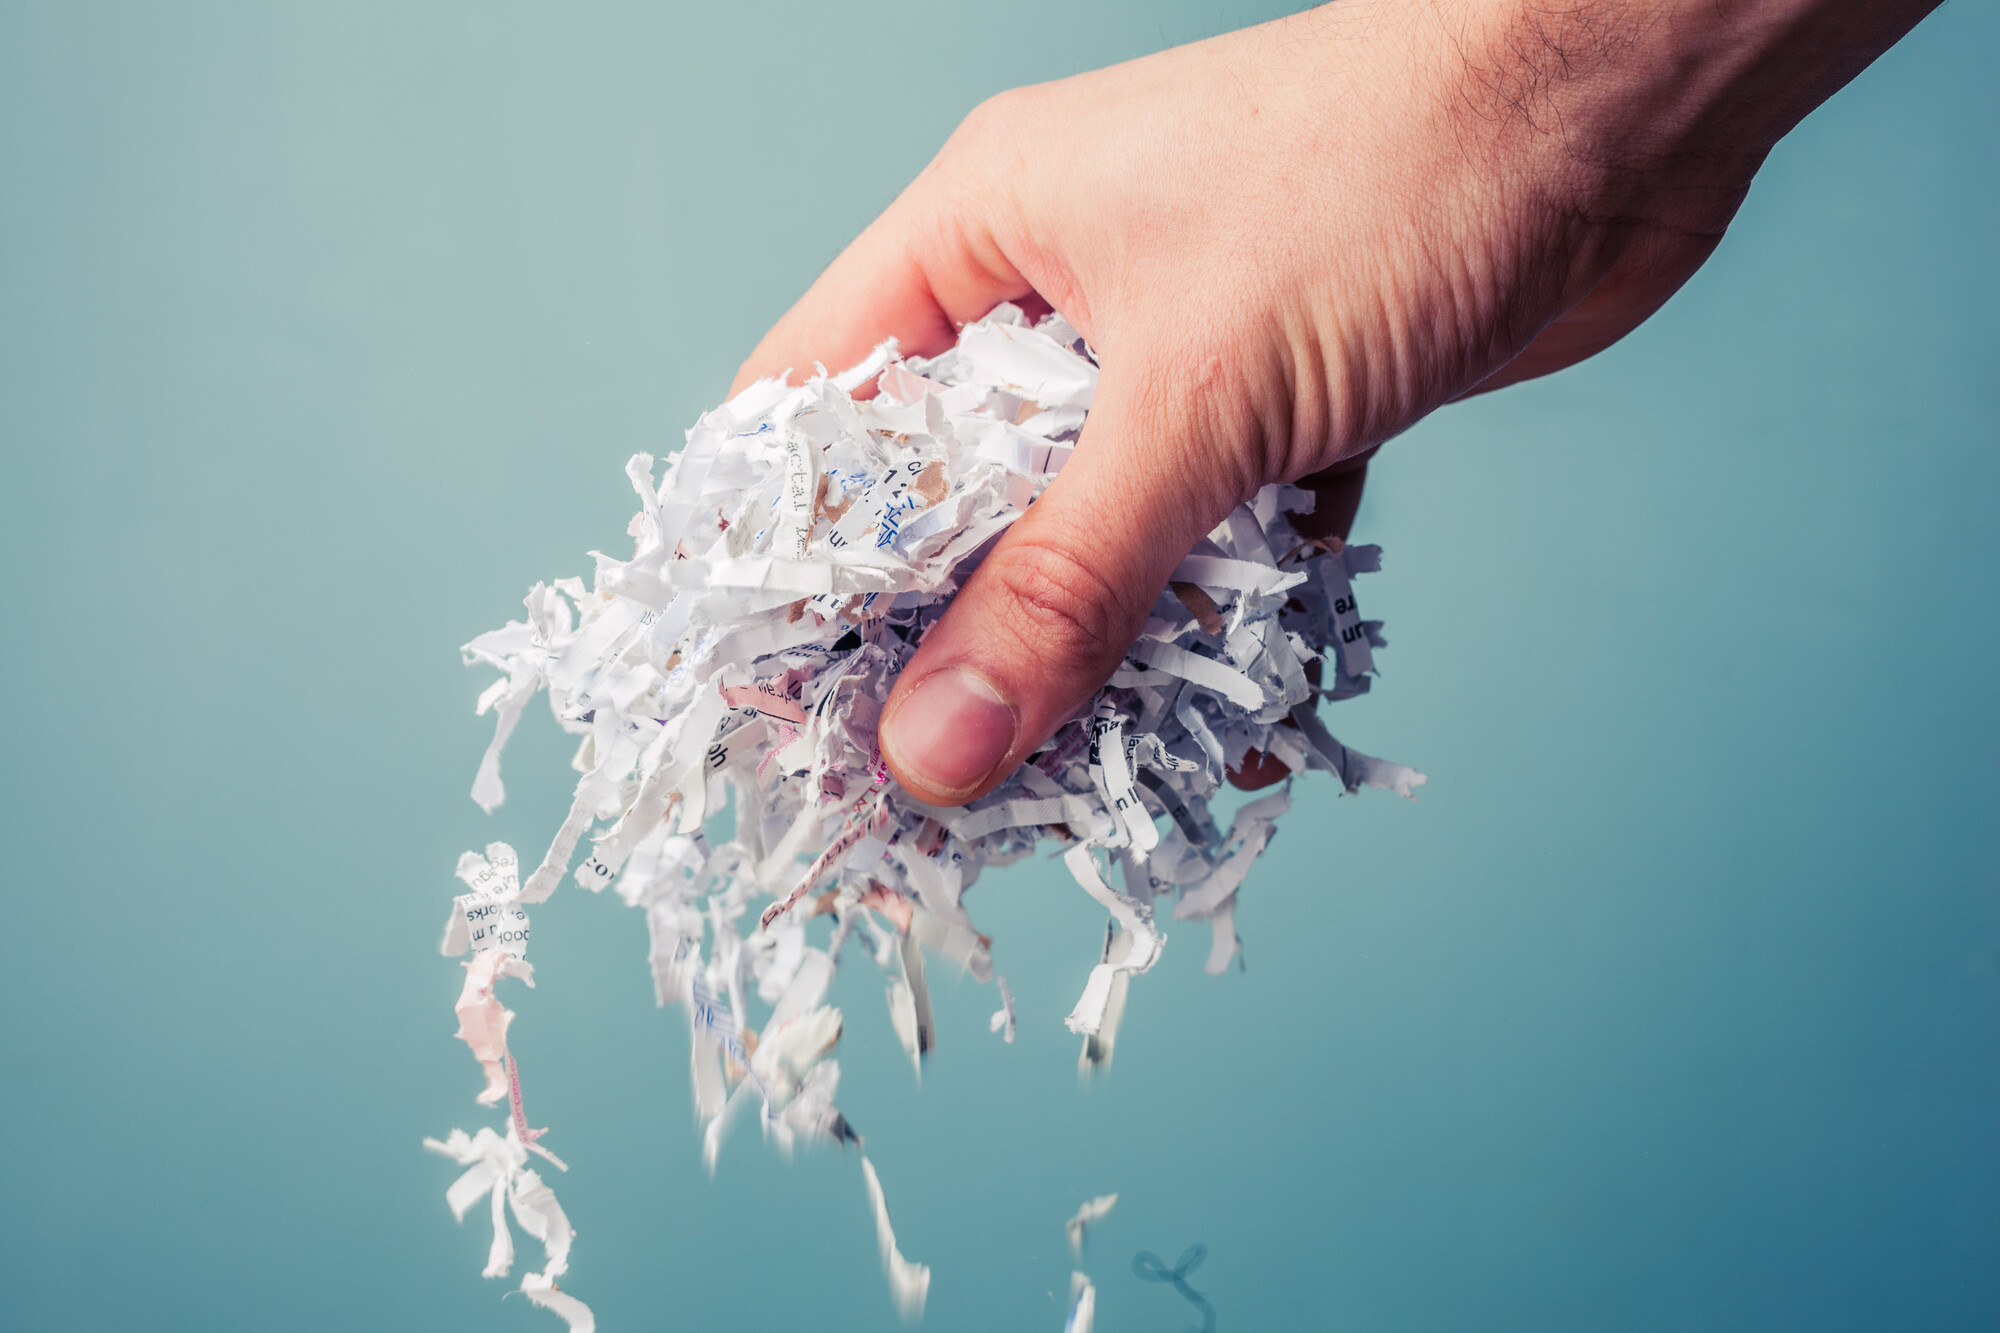 residential document shredding services